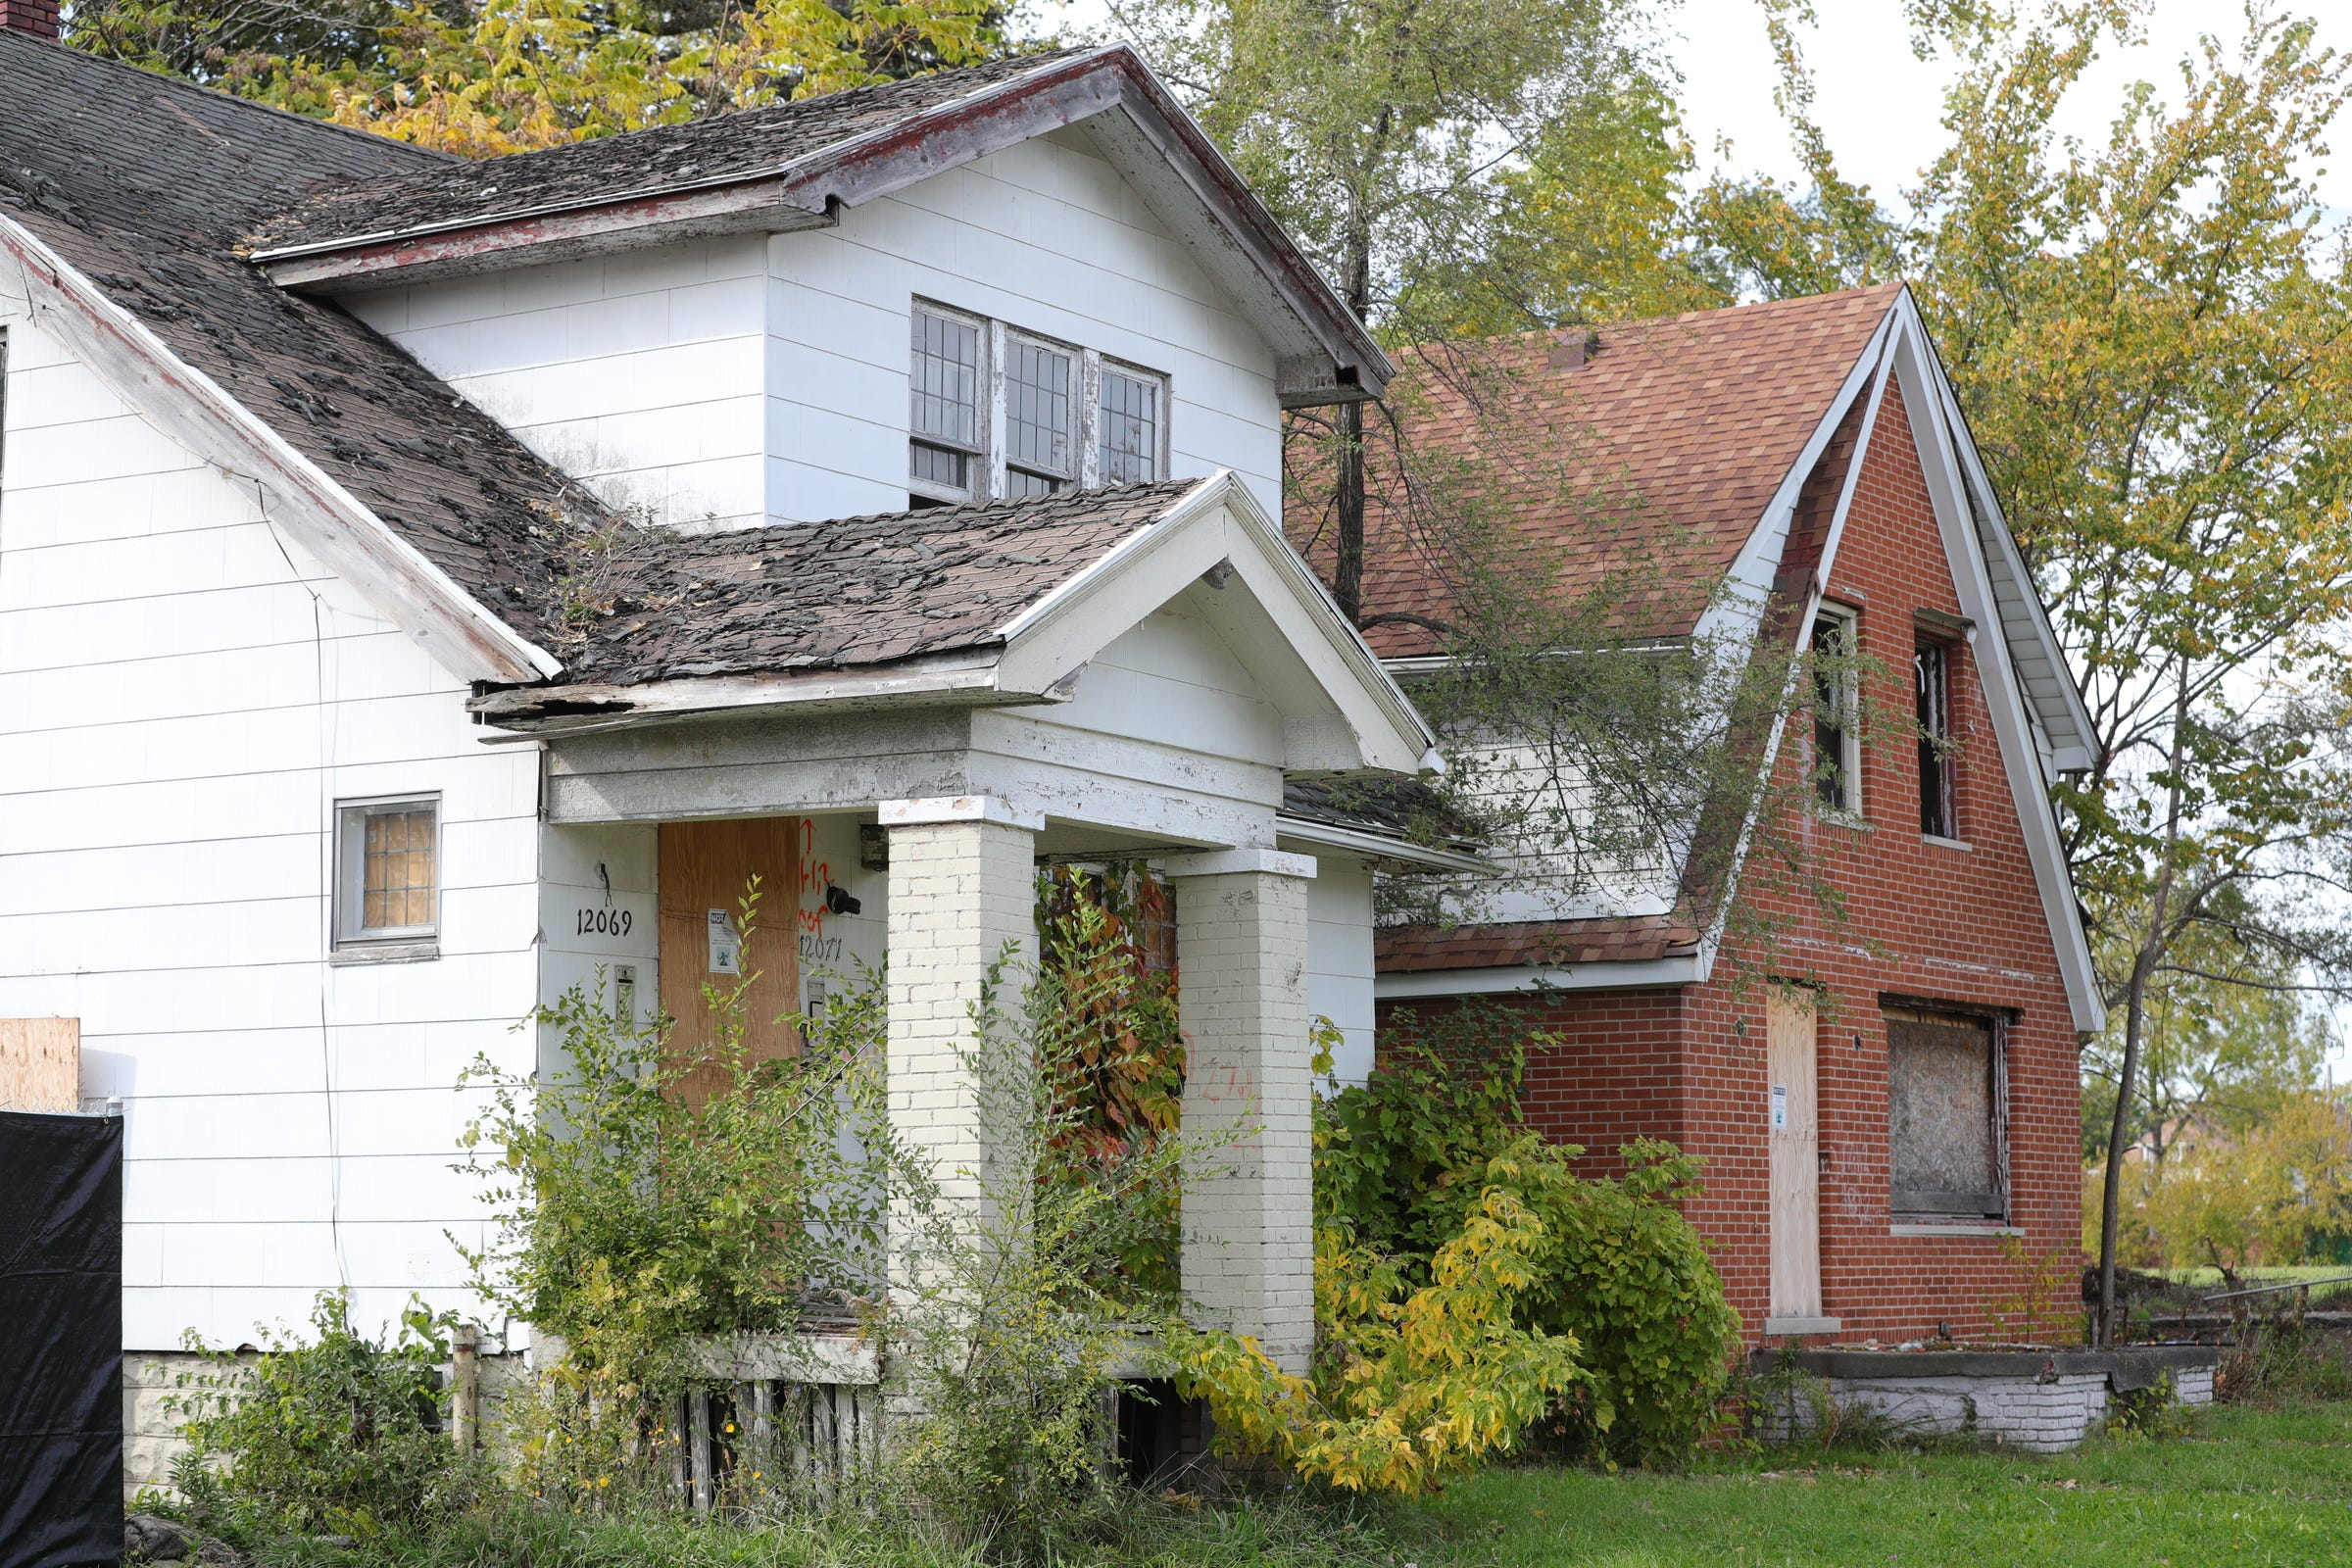 Some of the abandoned homes along Yellowstone Street, near Auntie Na's Village, Saturday, October 19, 2019 in Detroit, Mich.